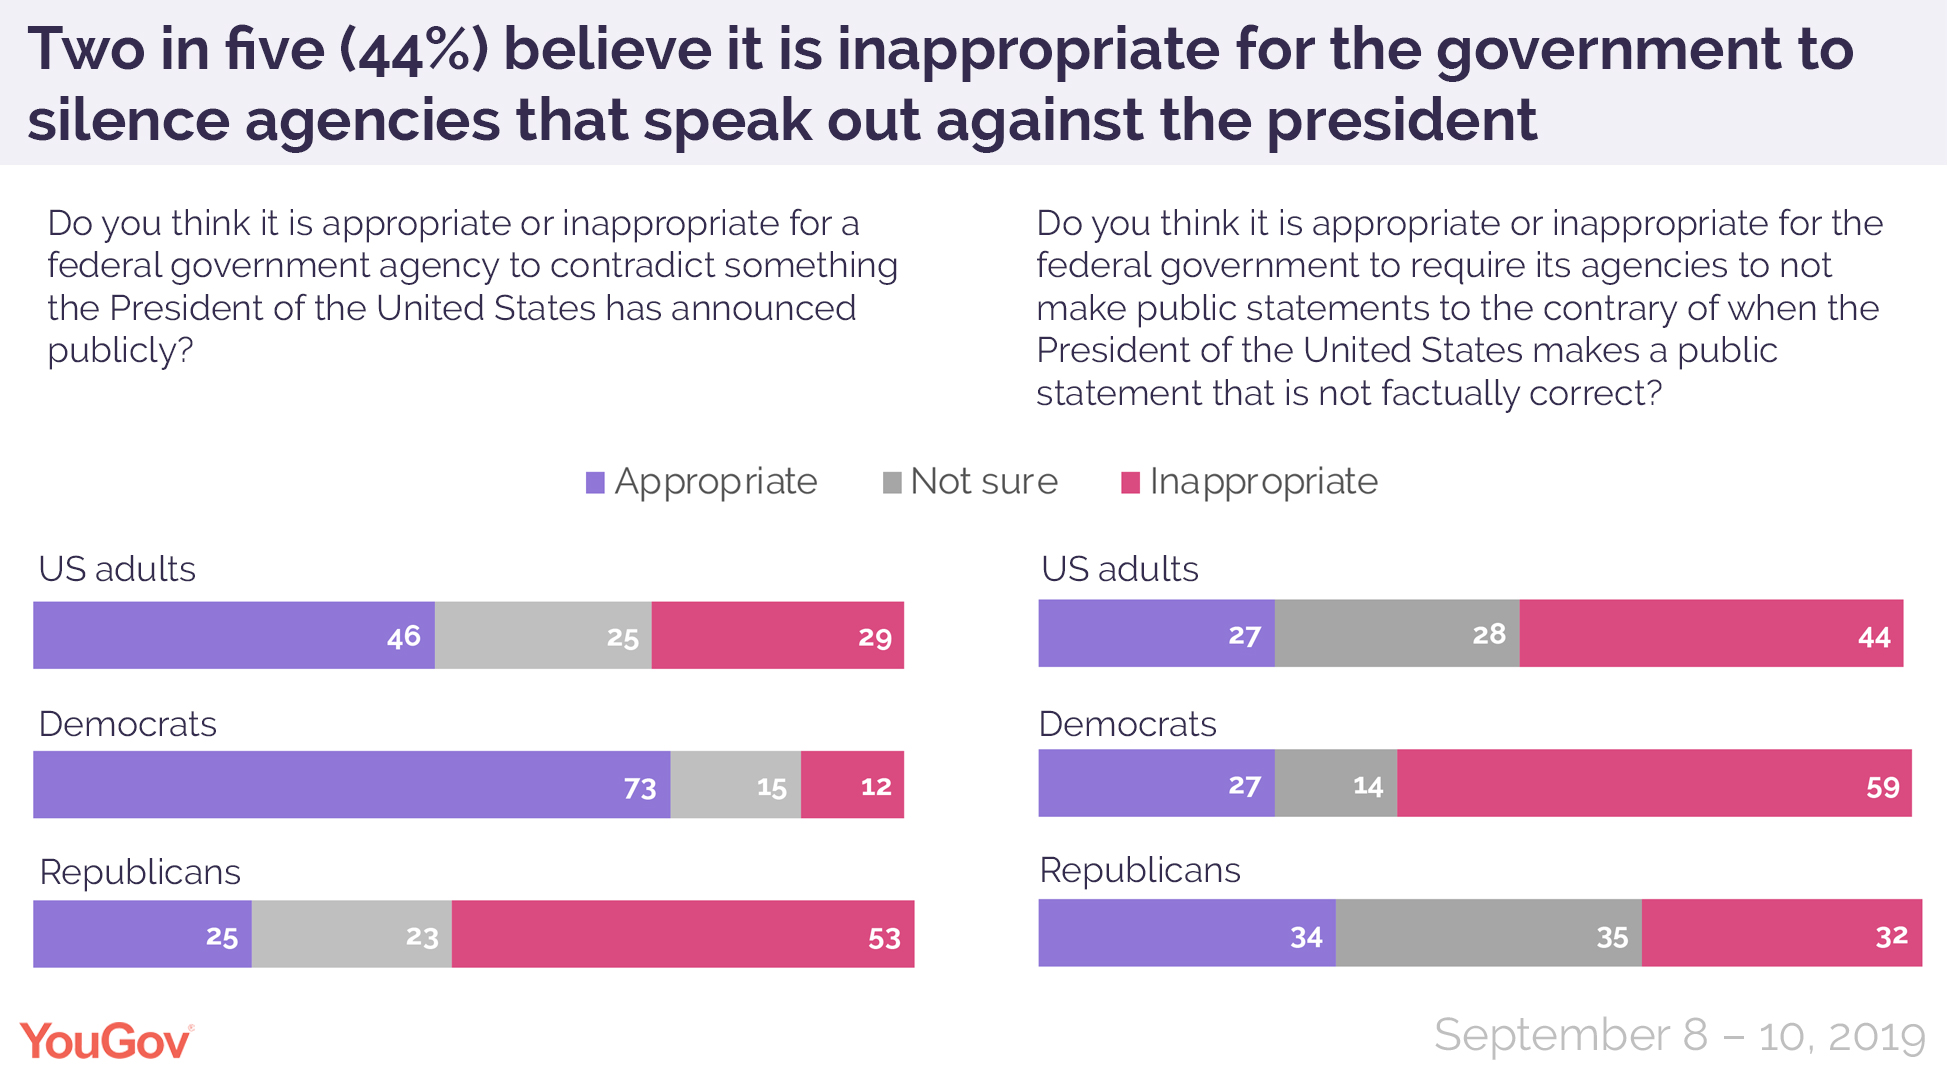 Two in five believe it is inappropriate for the government to silence agencies that speak out against the president